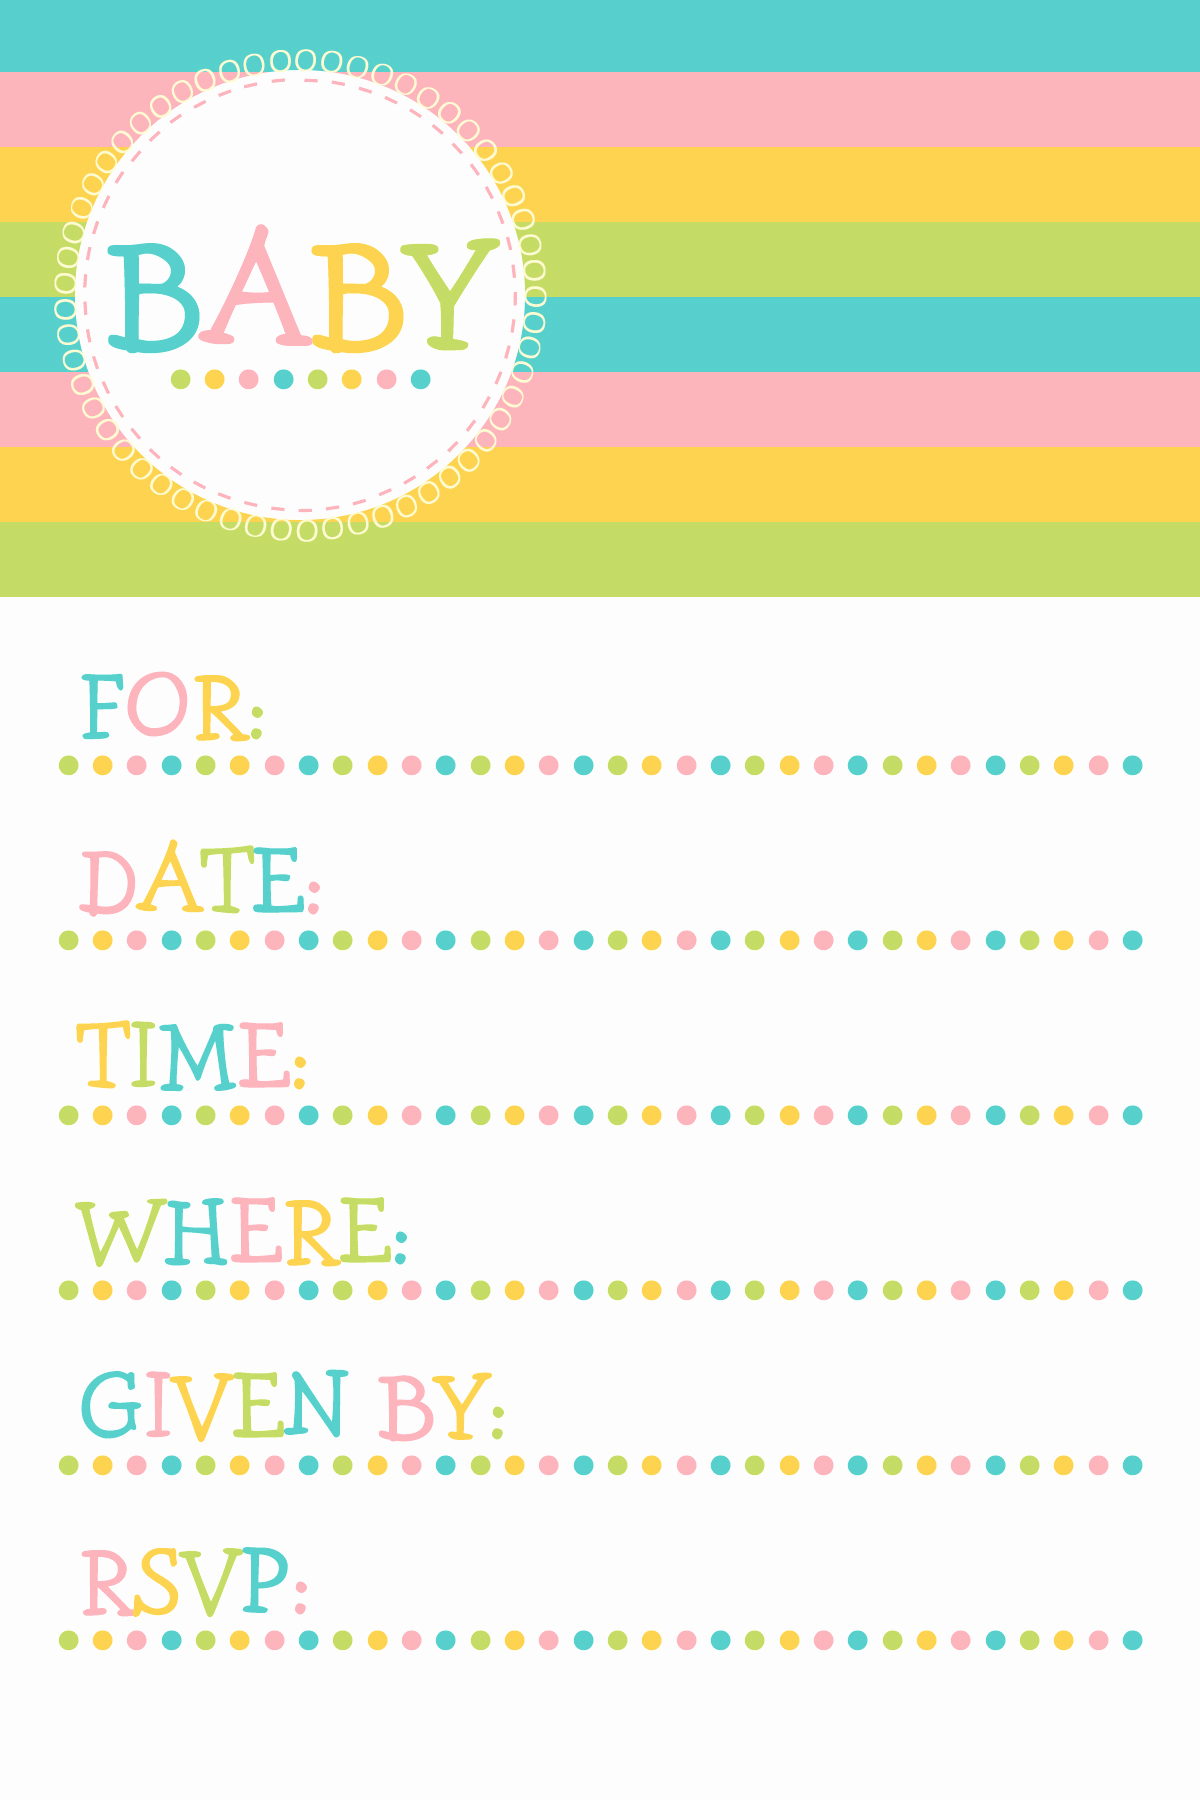 Baby Shower Invitation Free Printable Awesome Baby Shower Invitation Templates